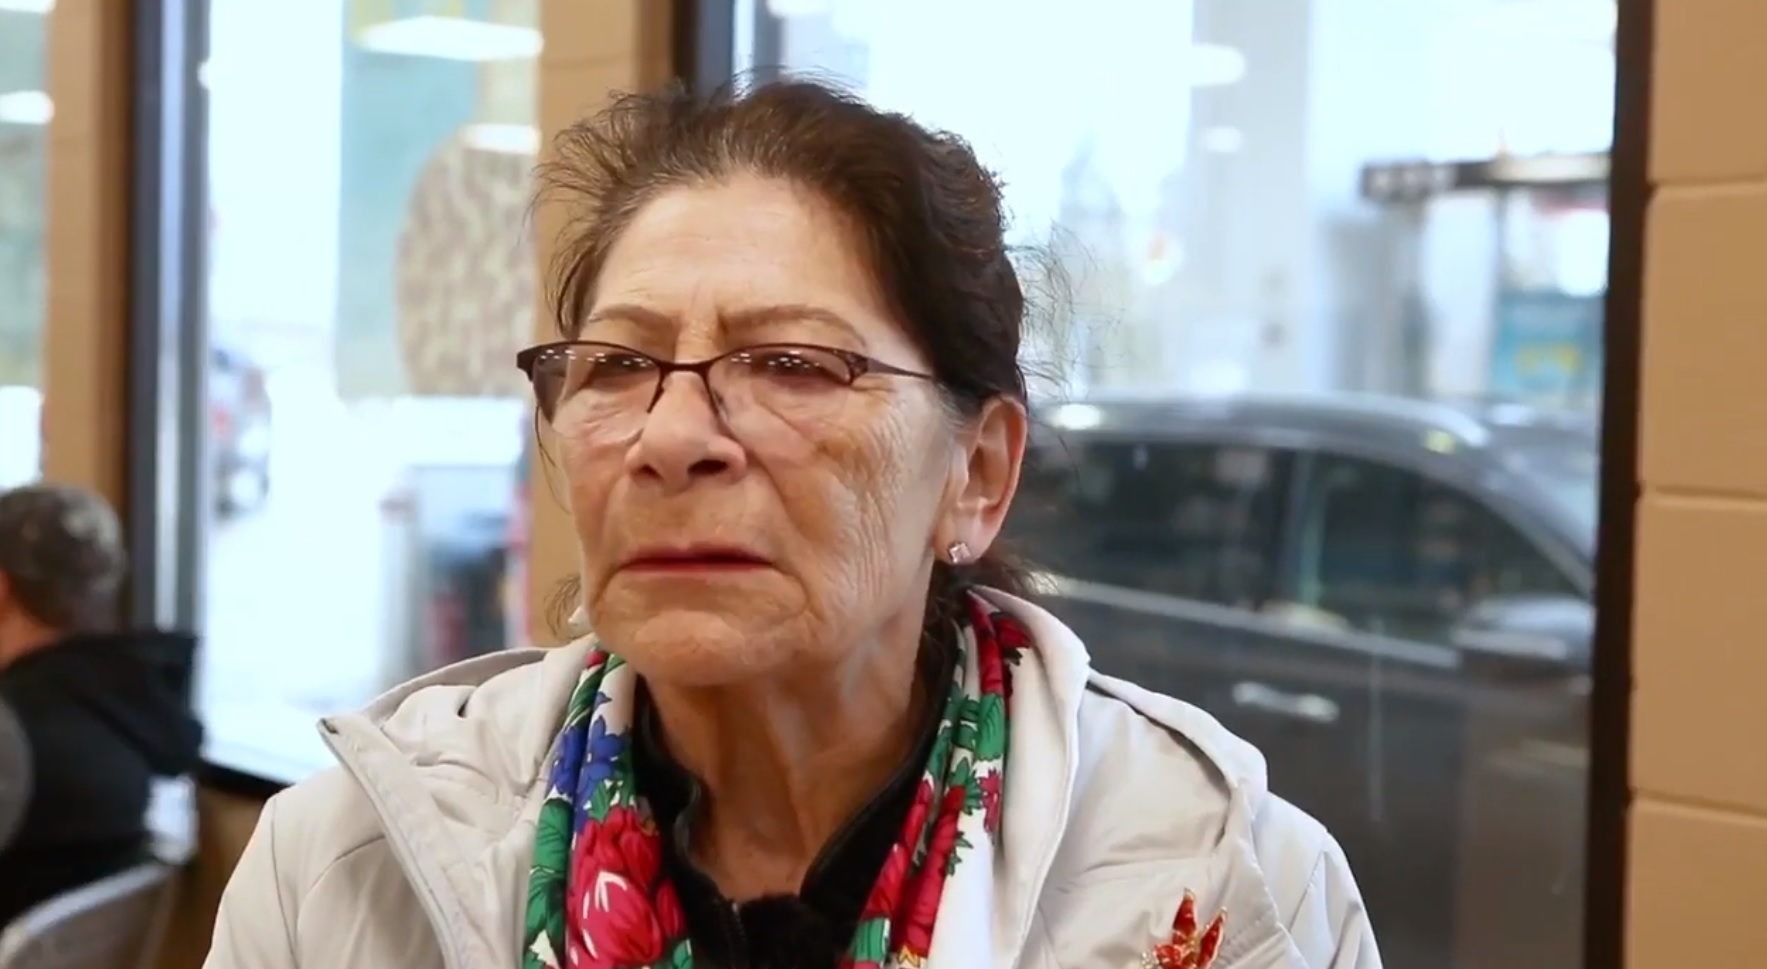 WATCH: Wet'suwet'en Hereditary Chief Says Her Nation Supports Pipeline